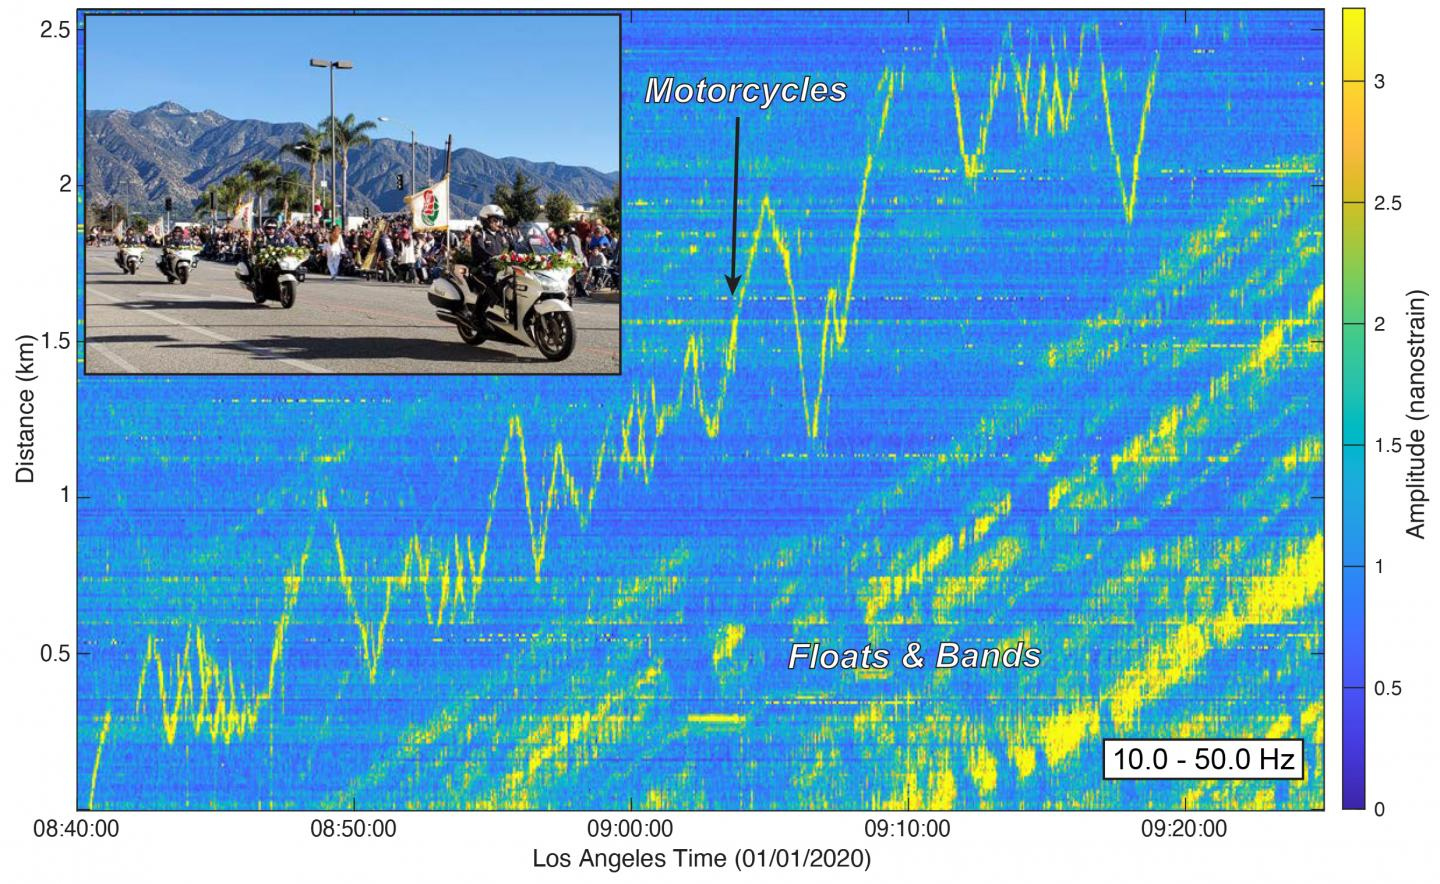 Seismic Signals from 2020 Rose Parade